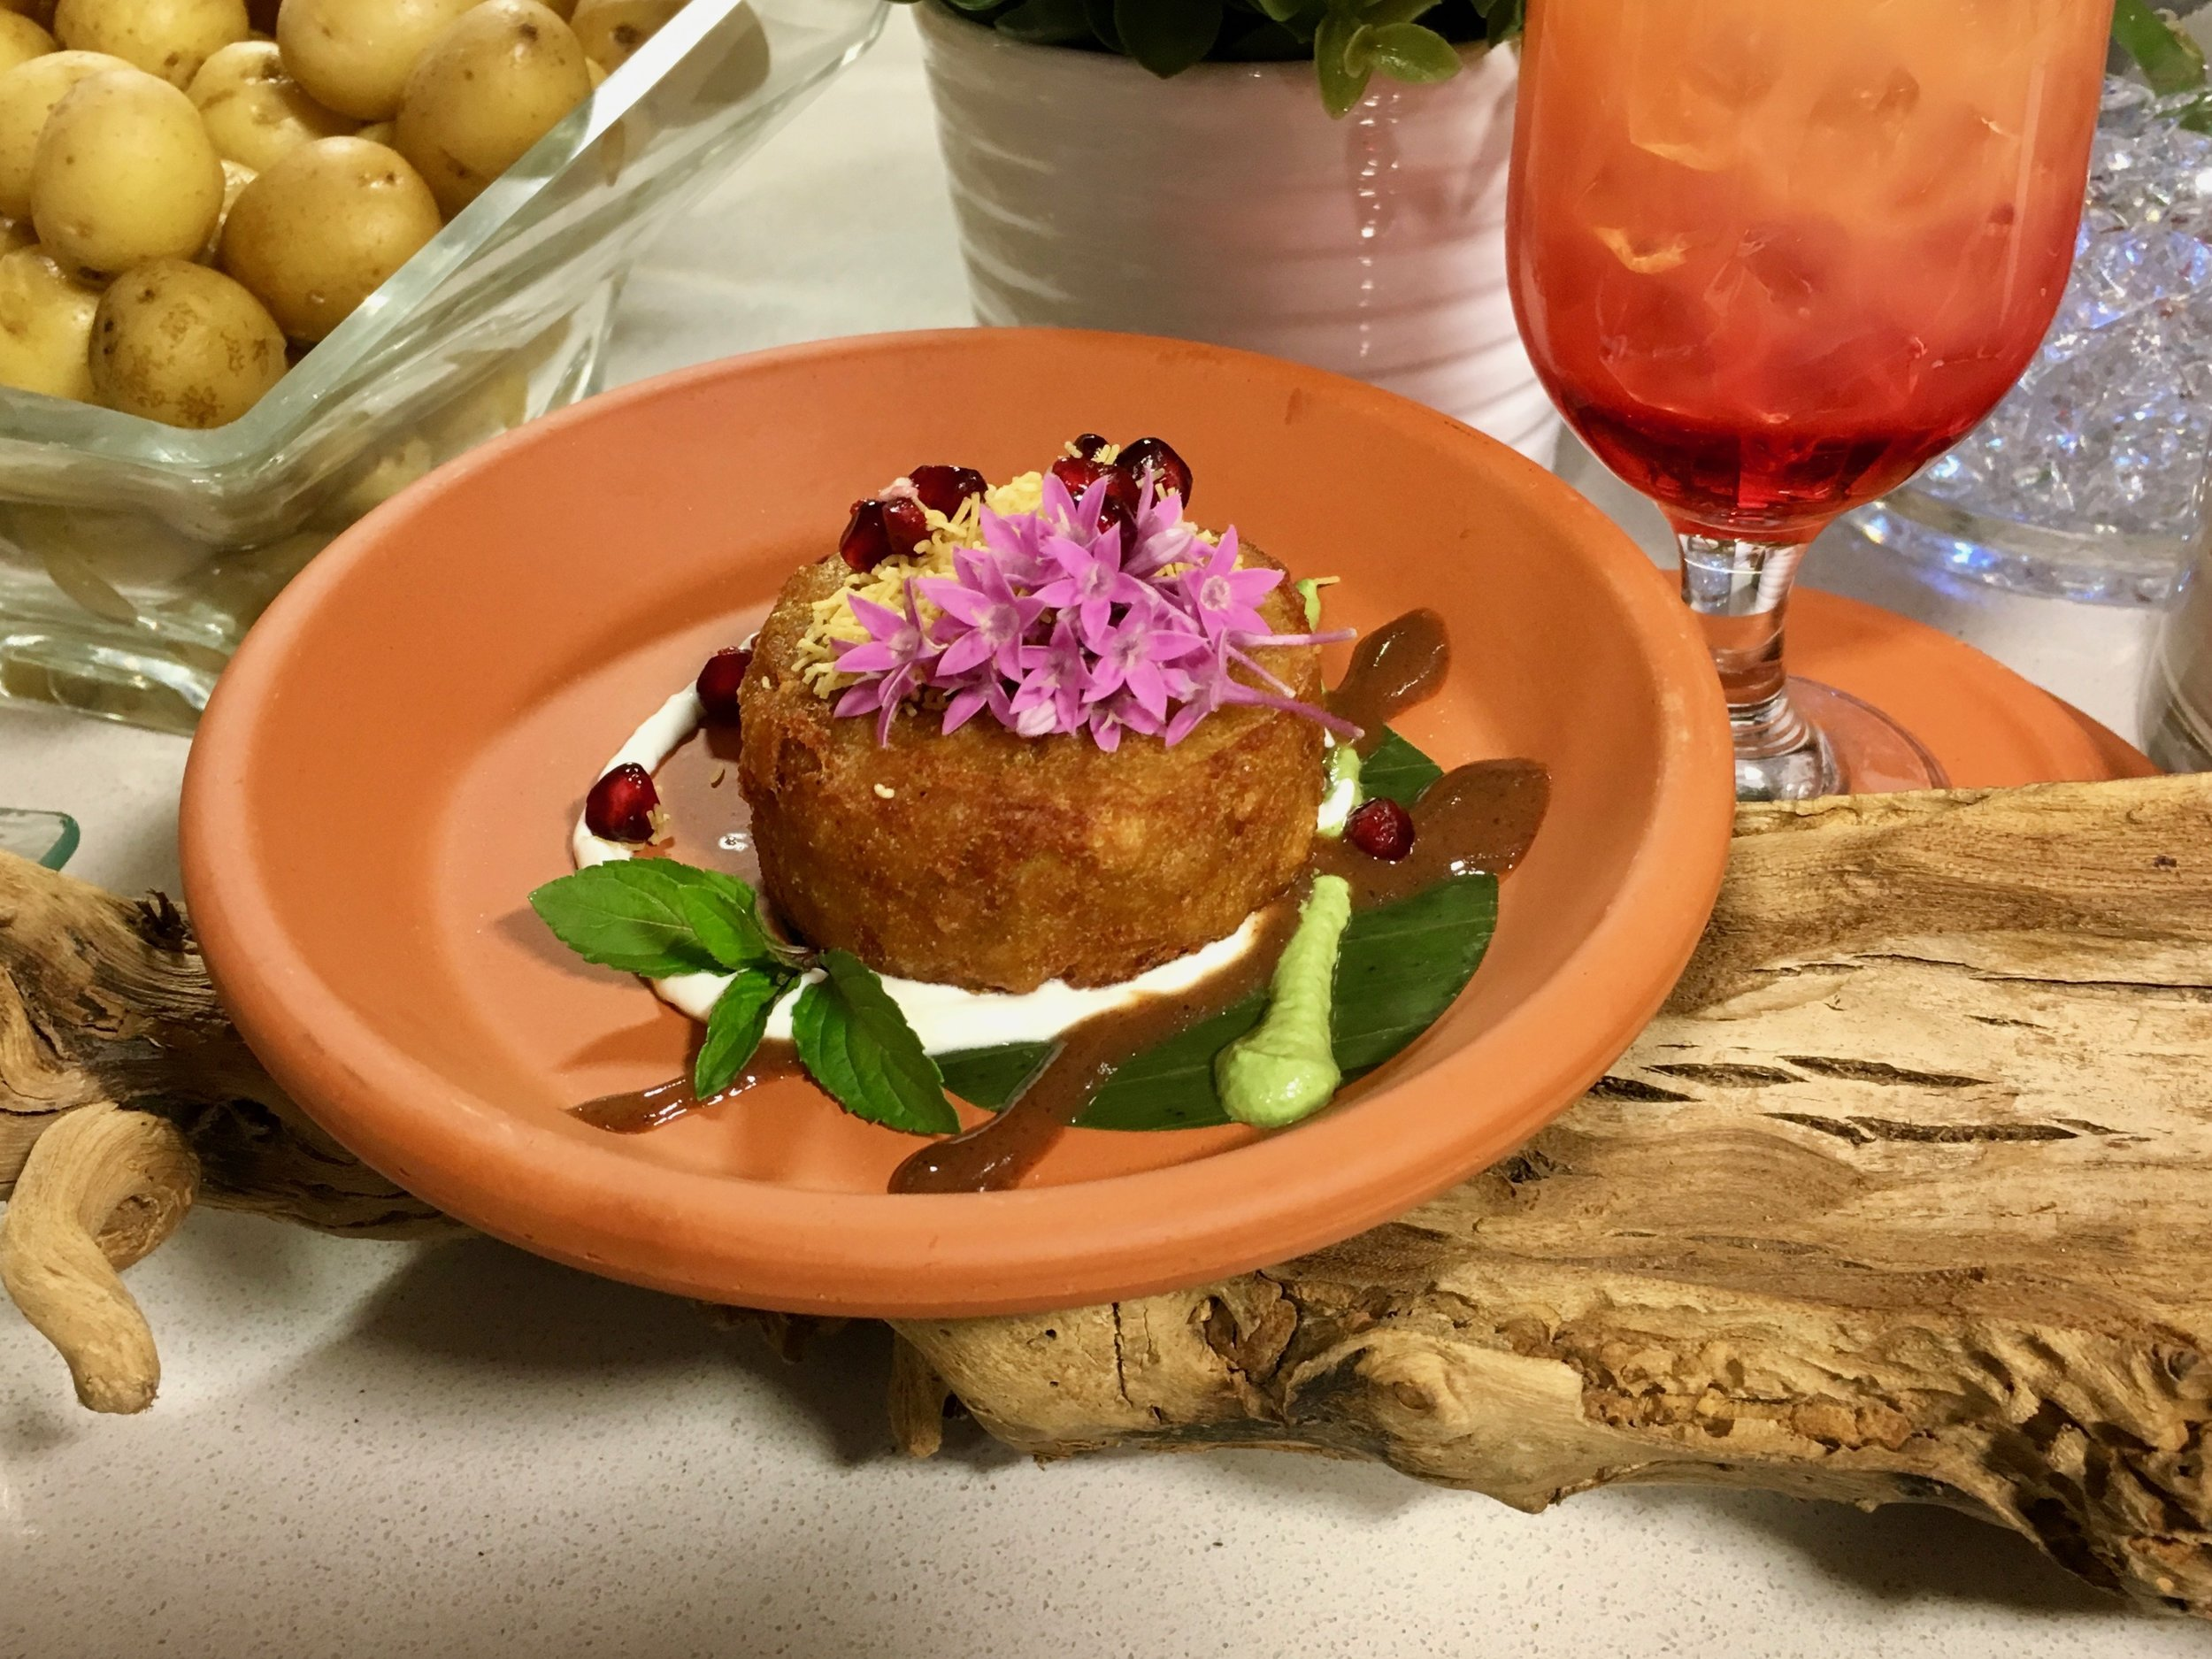 Tikki Chaat (Potato Curry Cake) served with Tamarind Sauce & Cool Mint Crème   Garnished with Crispy Lentil Threads and Pomegranate Seeds. Authentic Indian cusine is also increasingly popular and features many flavorful vegetarian recipes.